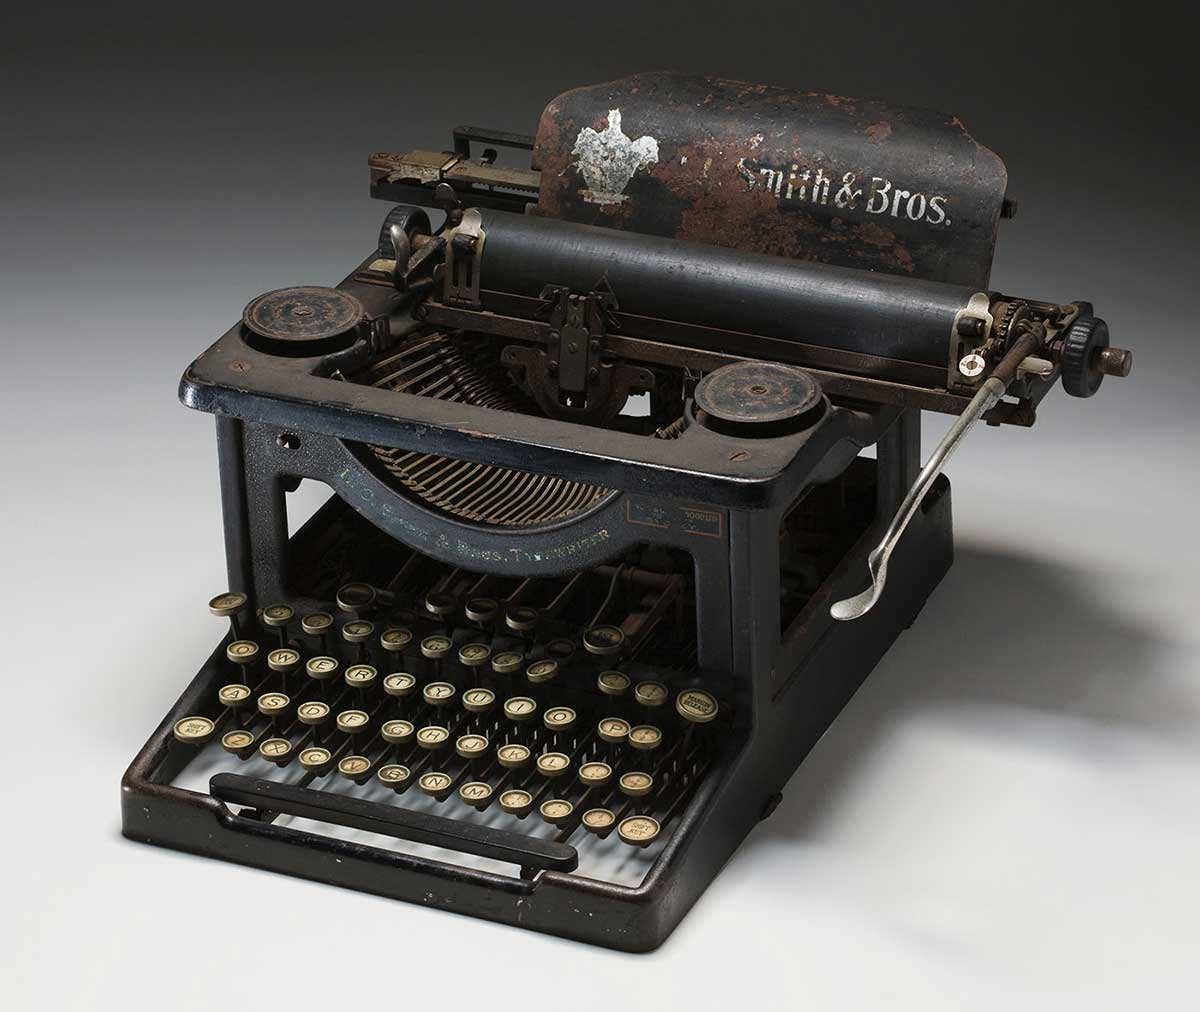 Antique typewriter with faded logo of L.C. Smith & Brothers. - click to view larger image